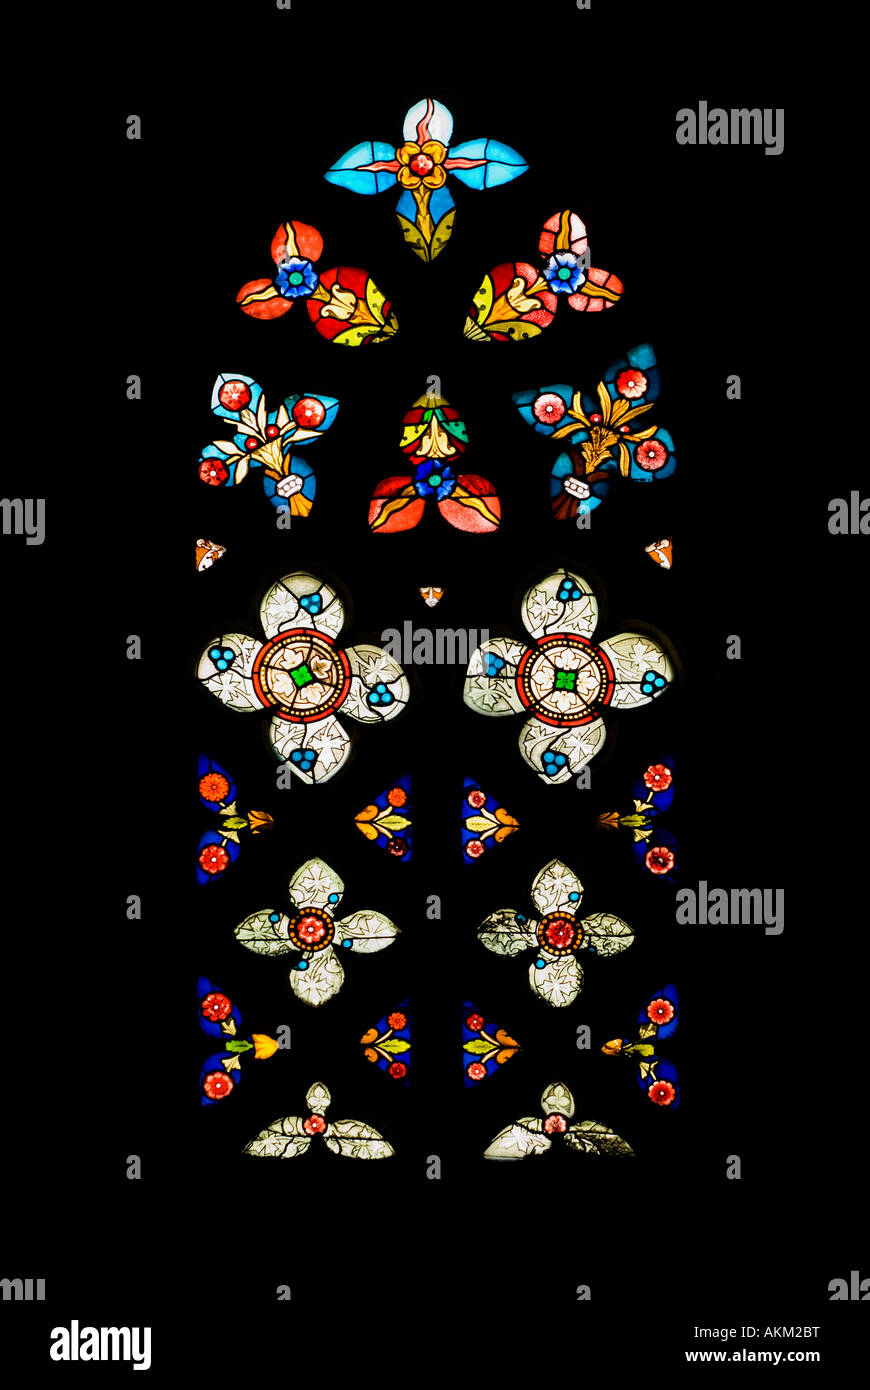 Gothic Stained Glass Window in Spanish Church of San Severino, Balmaseda, The Basque Country, Spain Stock Photo